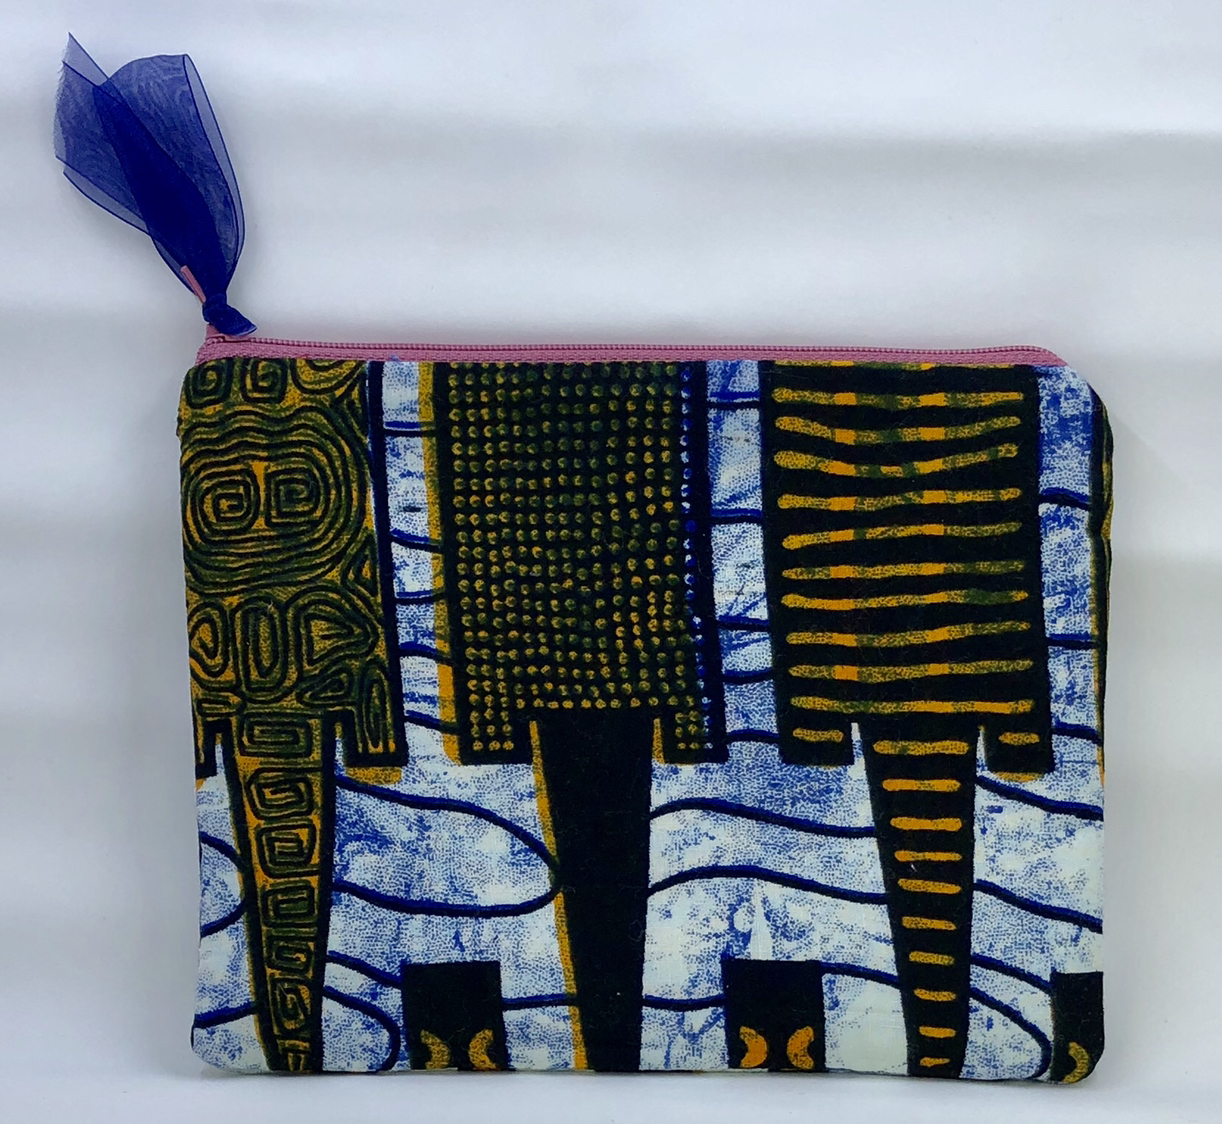 from 'Wambui Made It' Pouch Collection